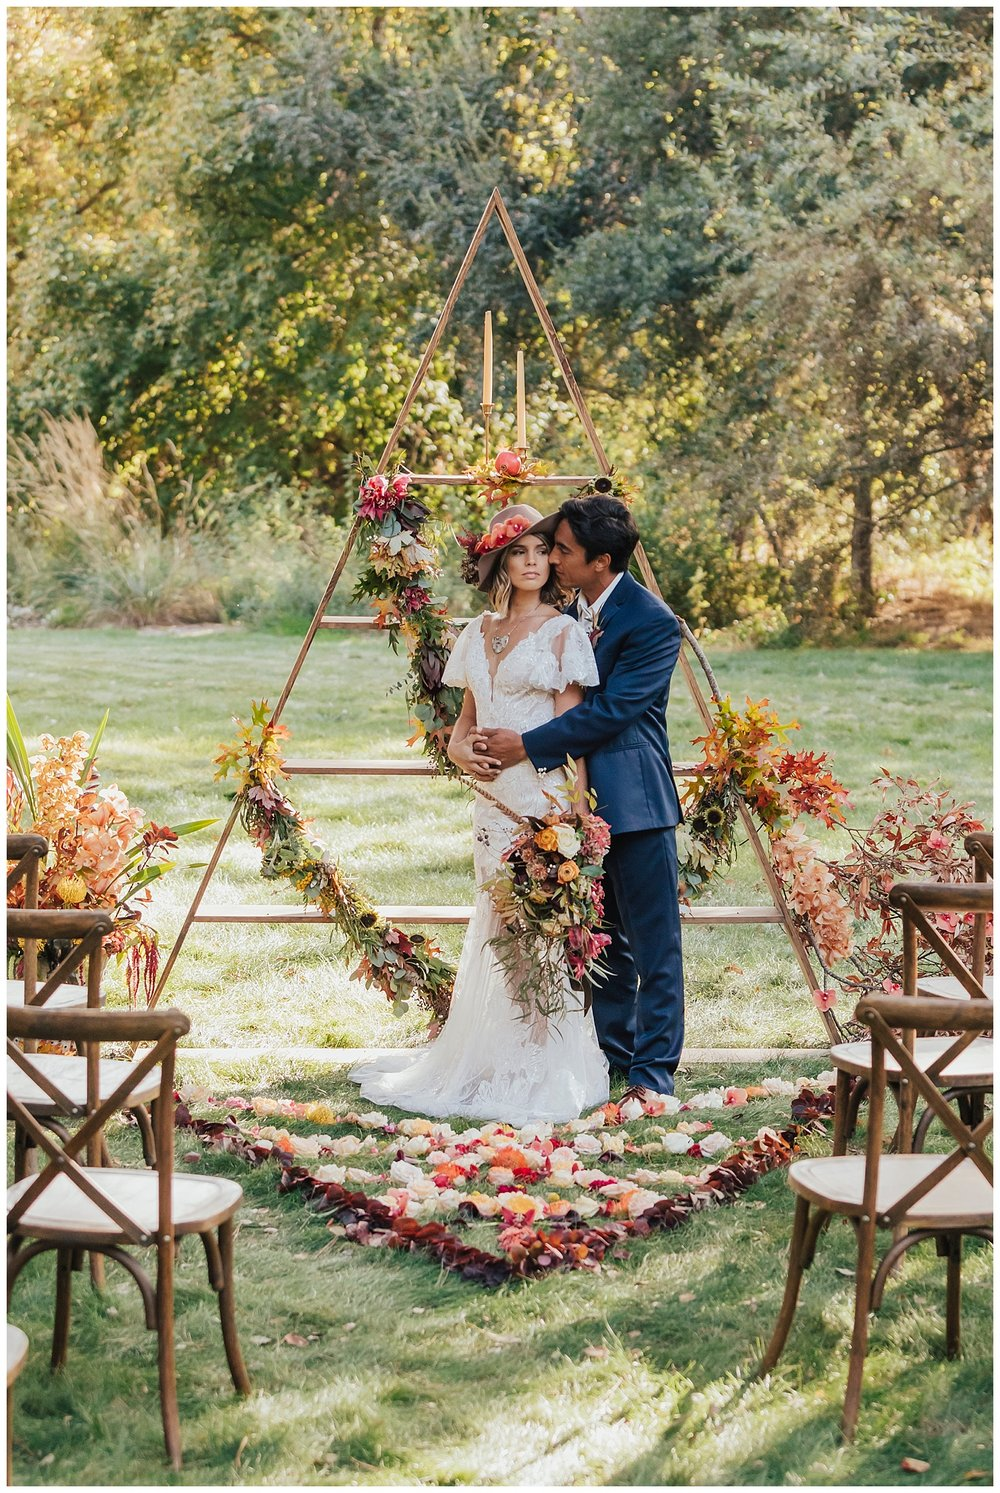 carol oliva photography boho bridal wedding